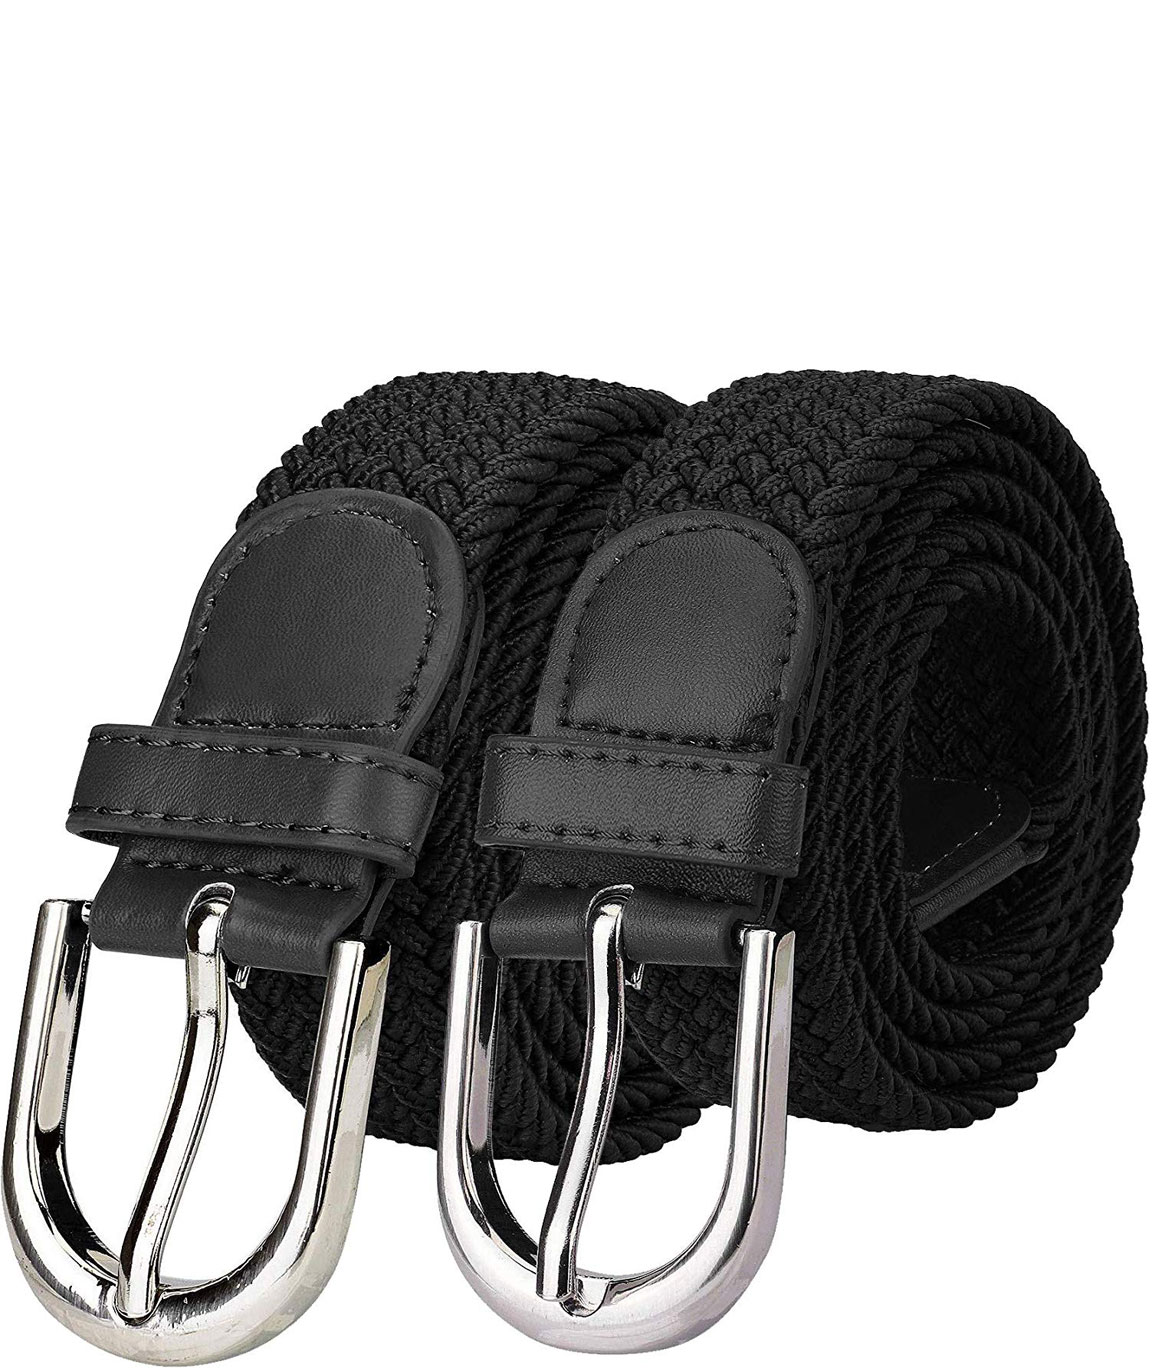 ZORO Stretchable braided cotton belt for Woman